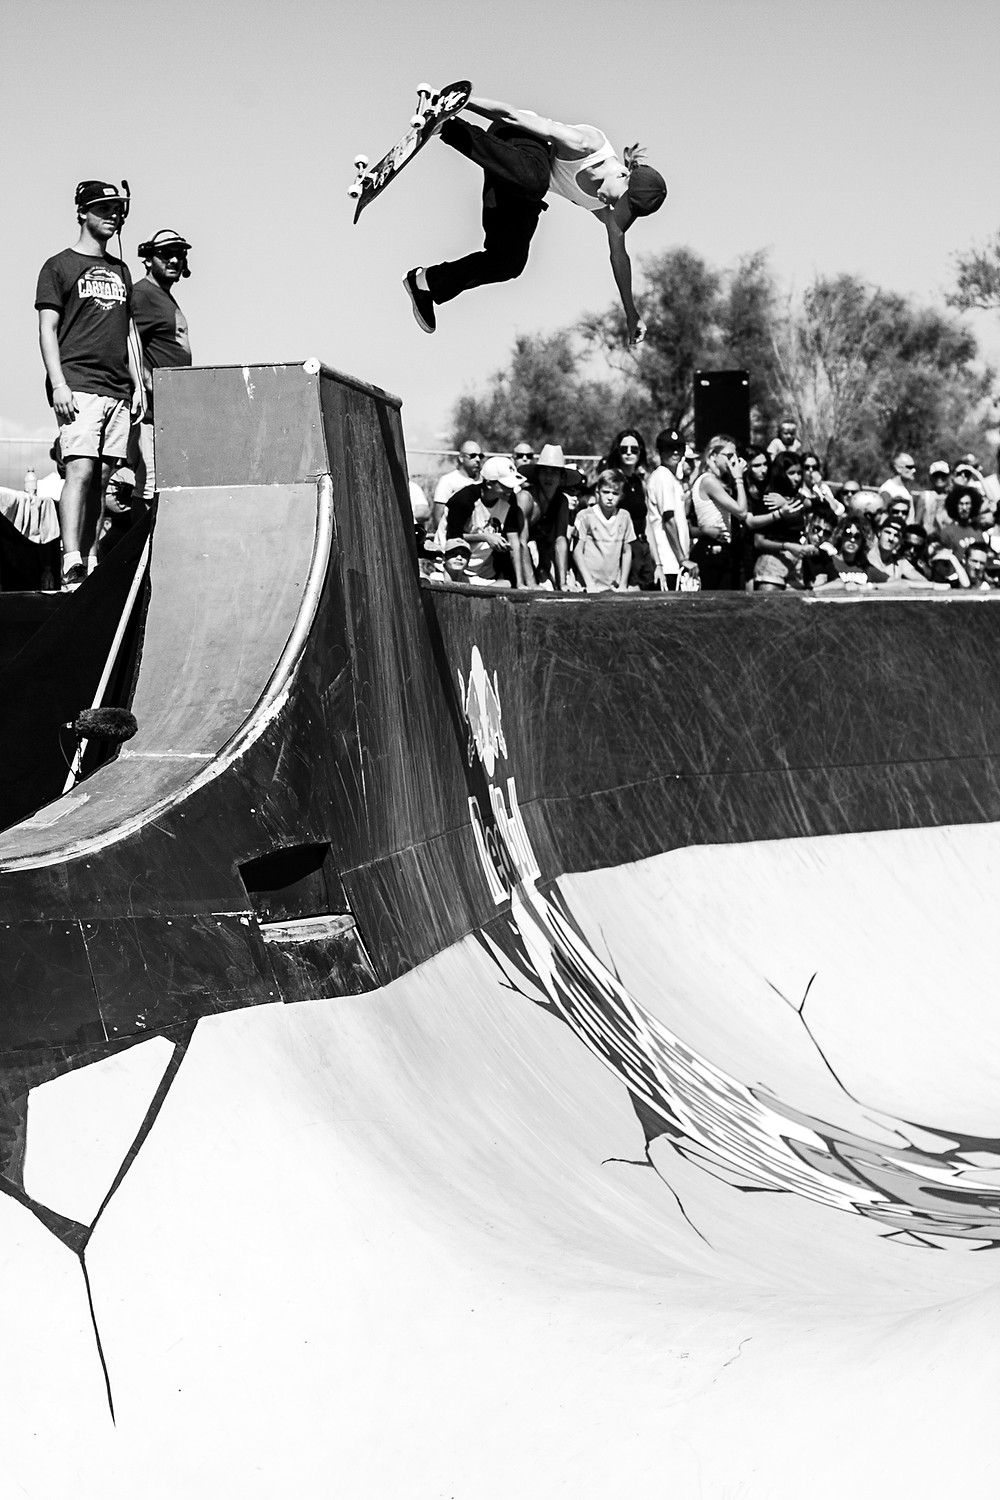 Red-Bull-Bowl-Rippers-18_C.Chouleur_5